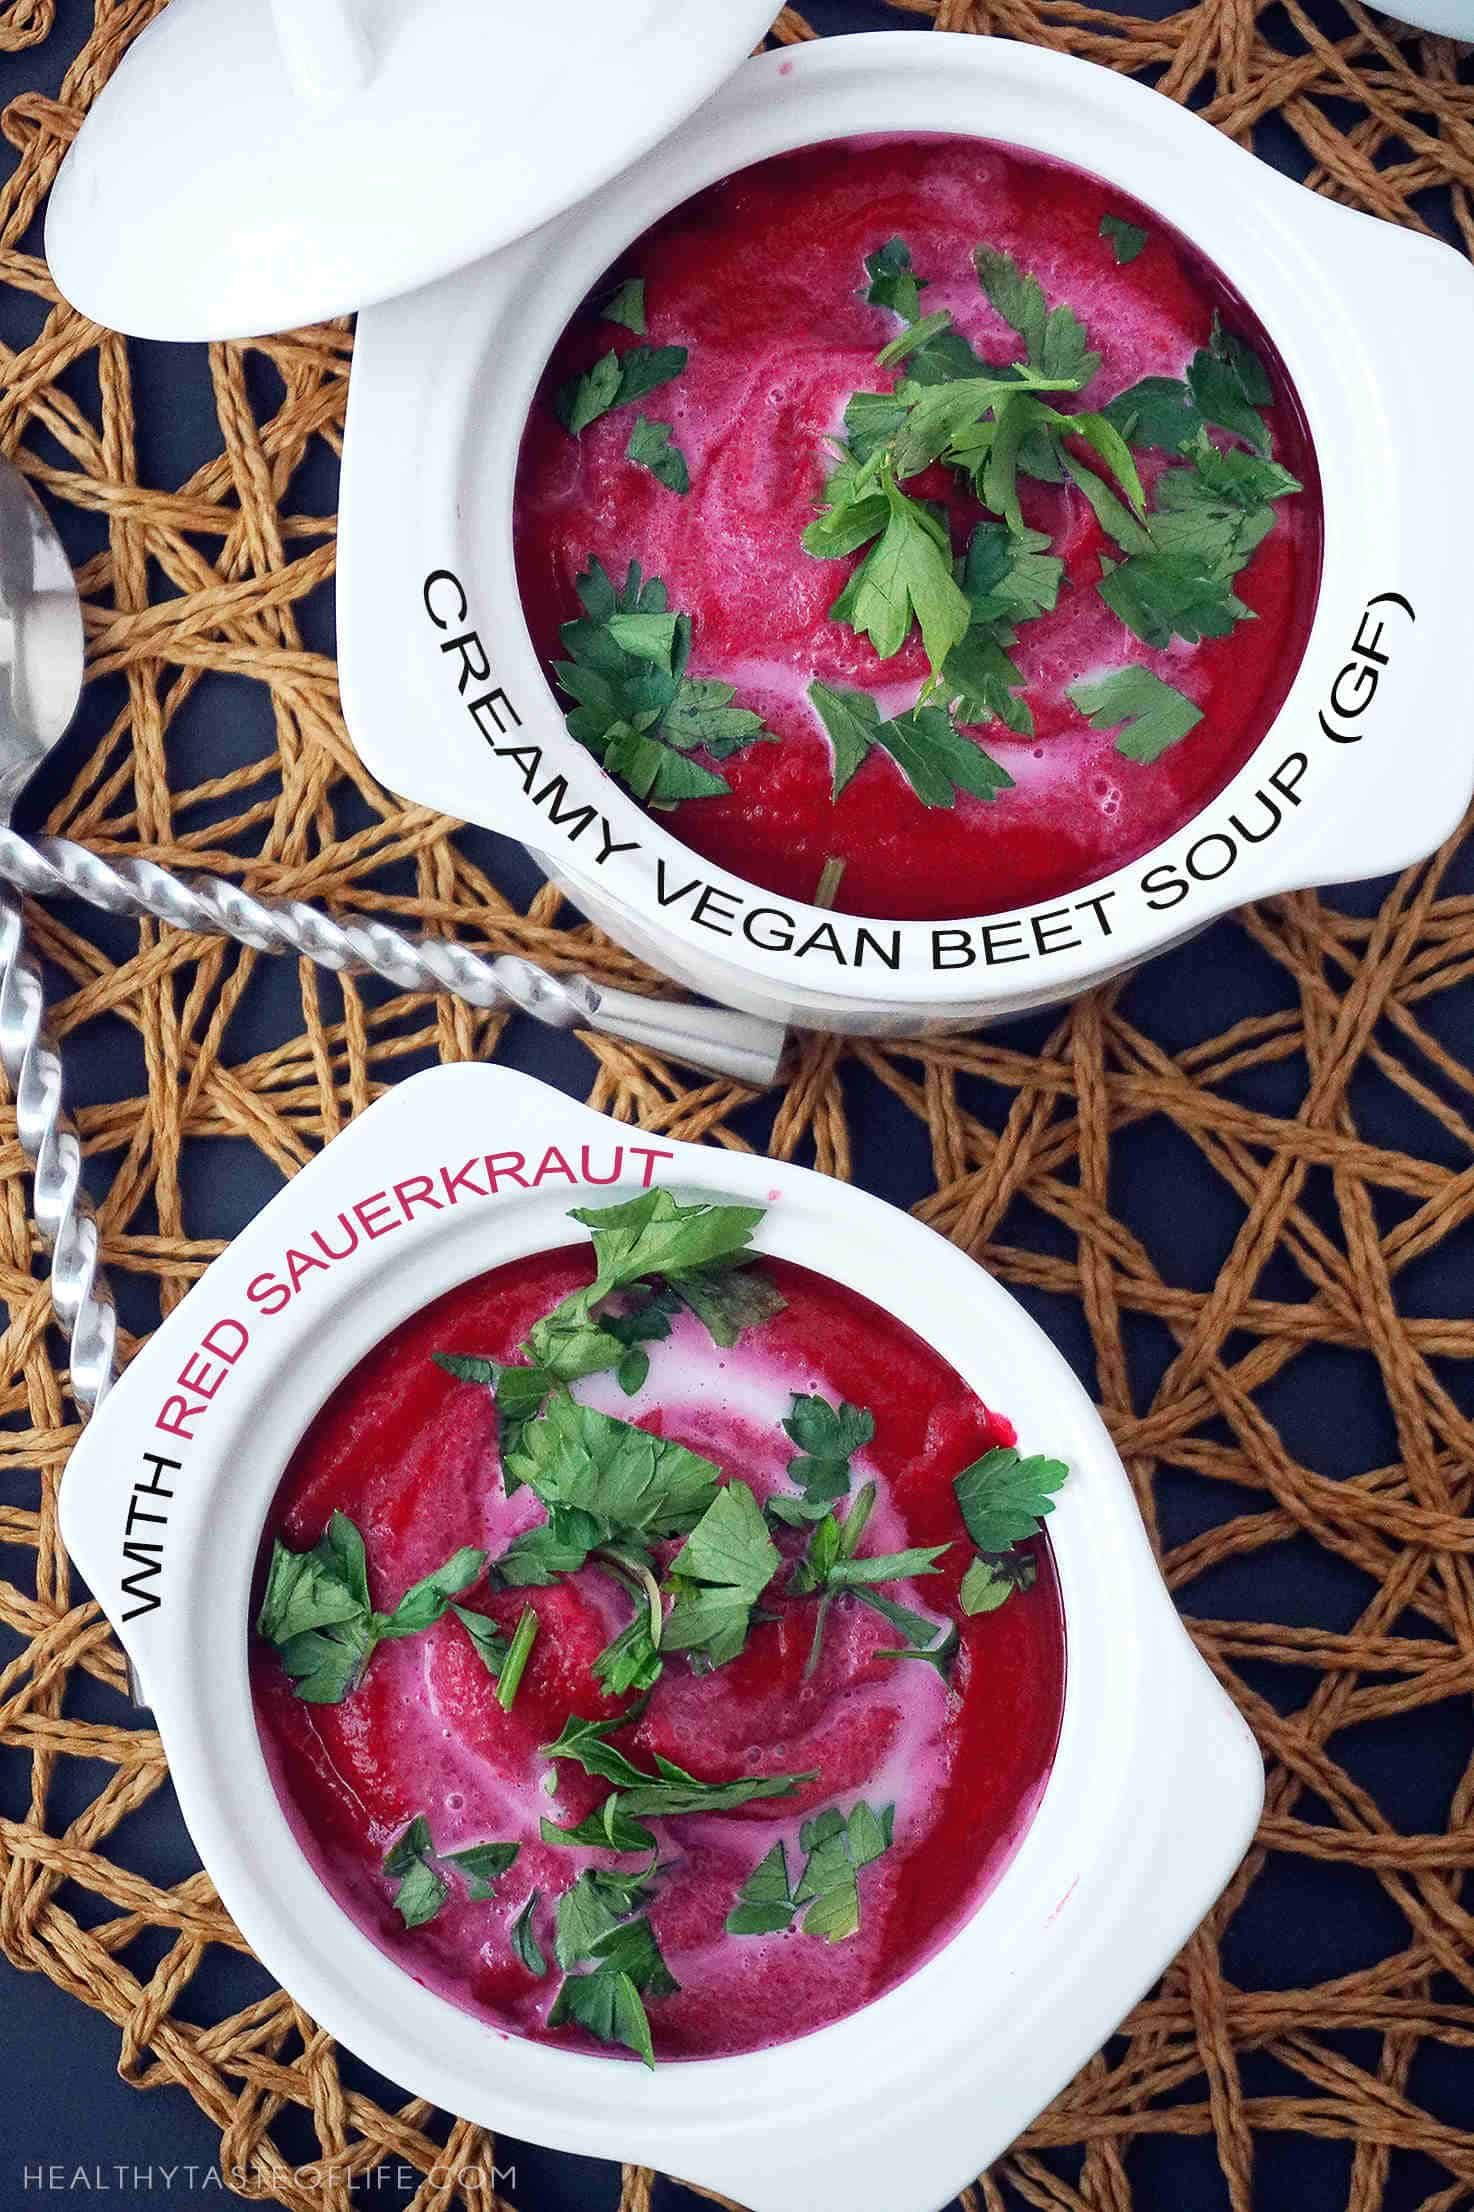 """This delicious creamy beet soup recipe is a simple vegan version of traditional borscht made creamy in a blender. A healthy, gluten free soup with sweet-and-sour hues made with beets and red sauerkraut that make the flavor """"pop"""", perfect for cold weather!"""